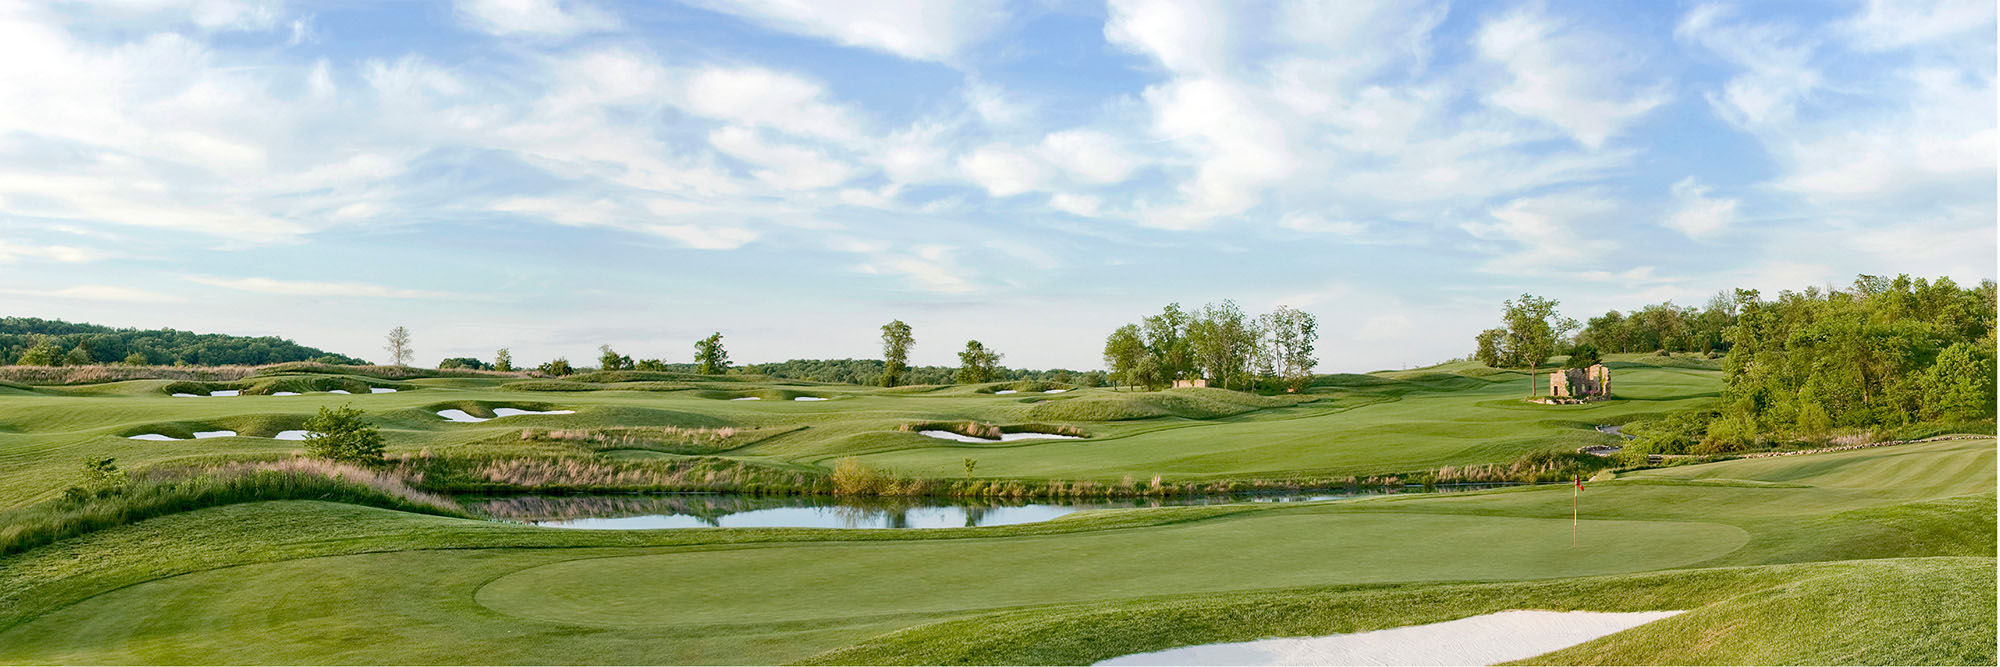 Golf Course Image - Whiskey Creek Golf Club No. 18